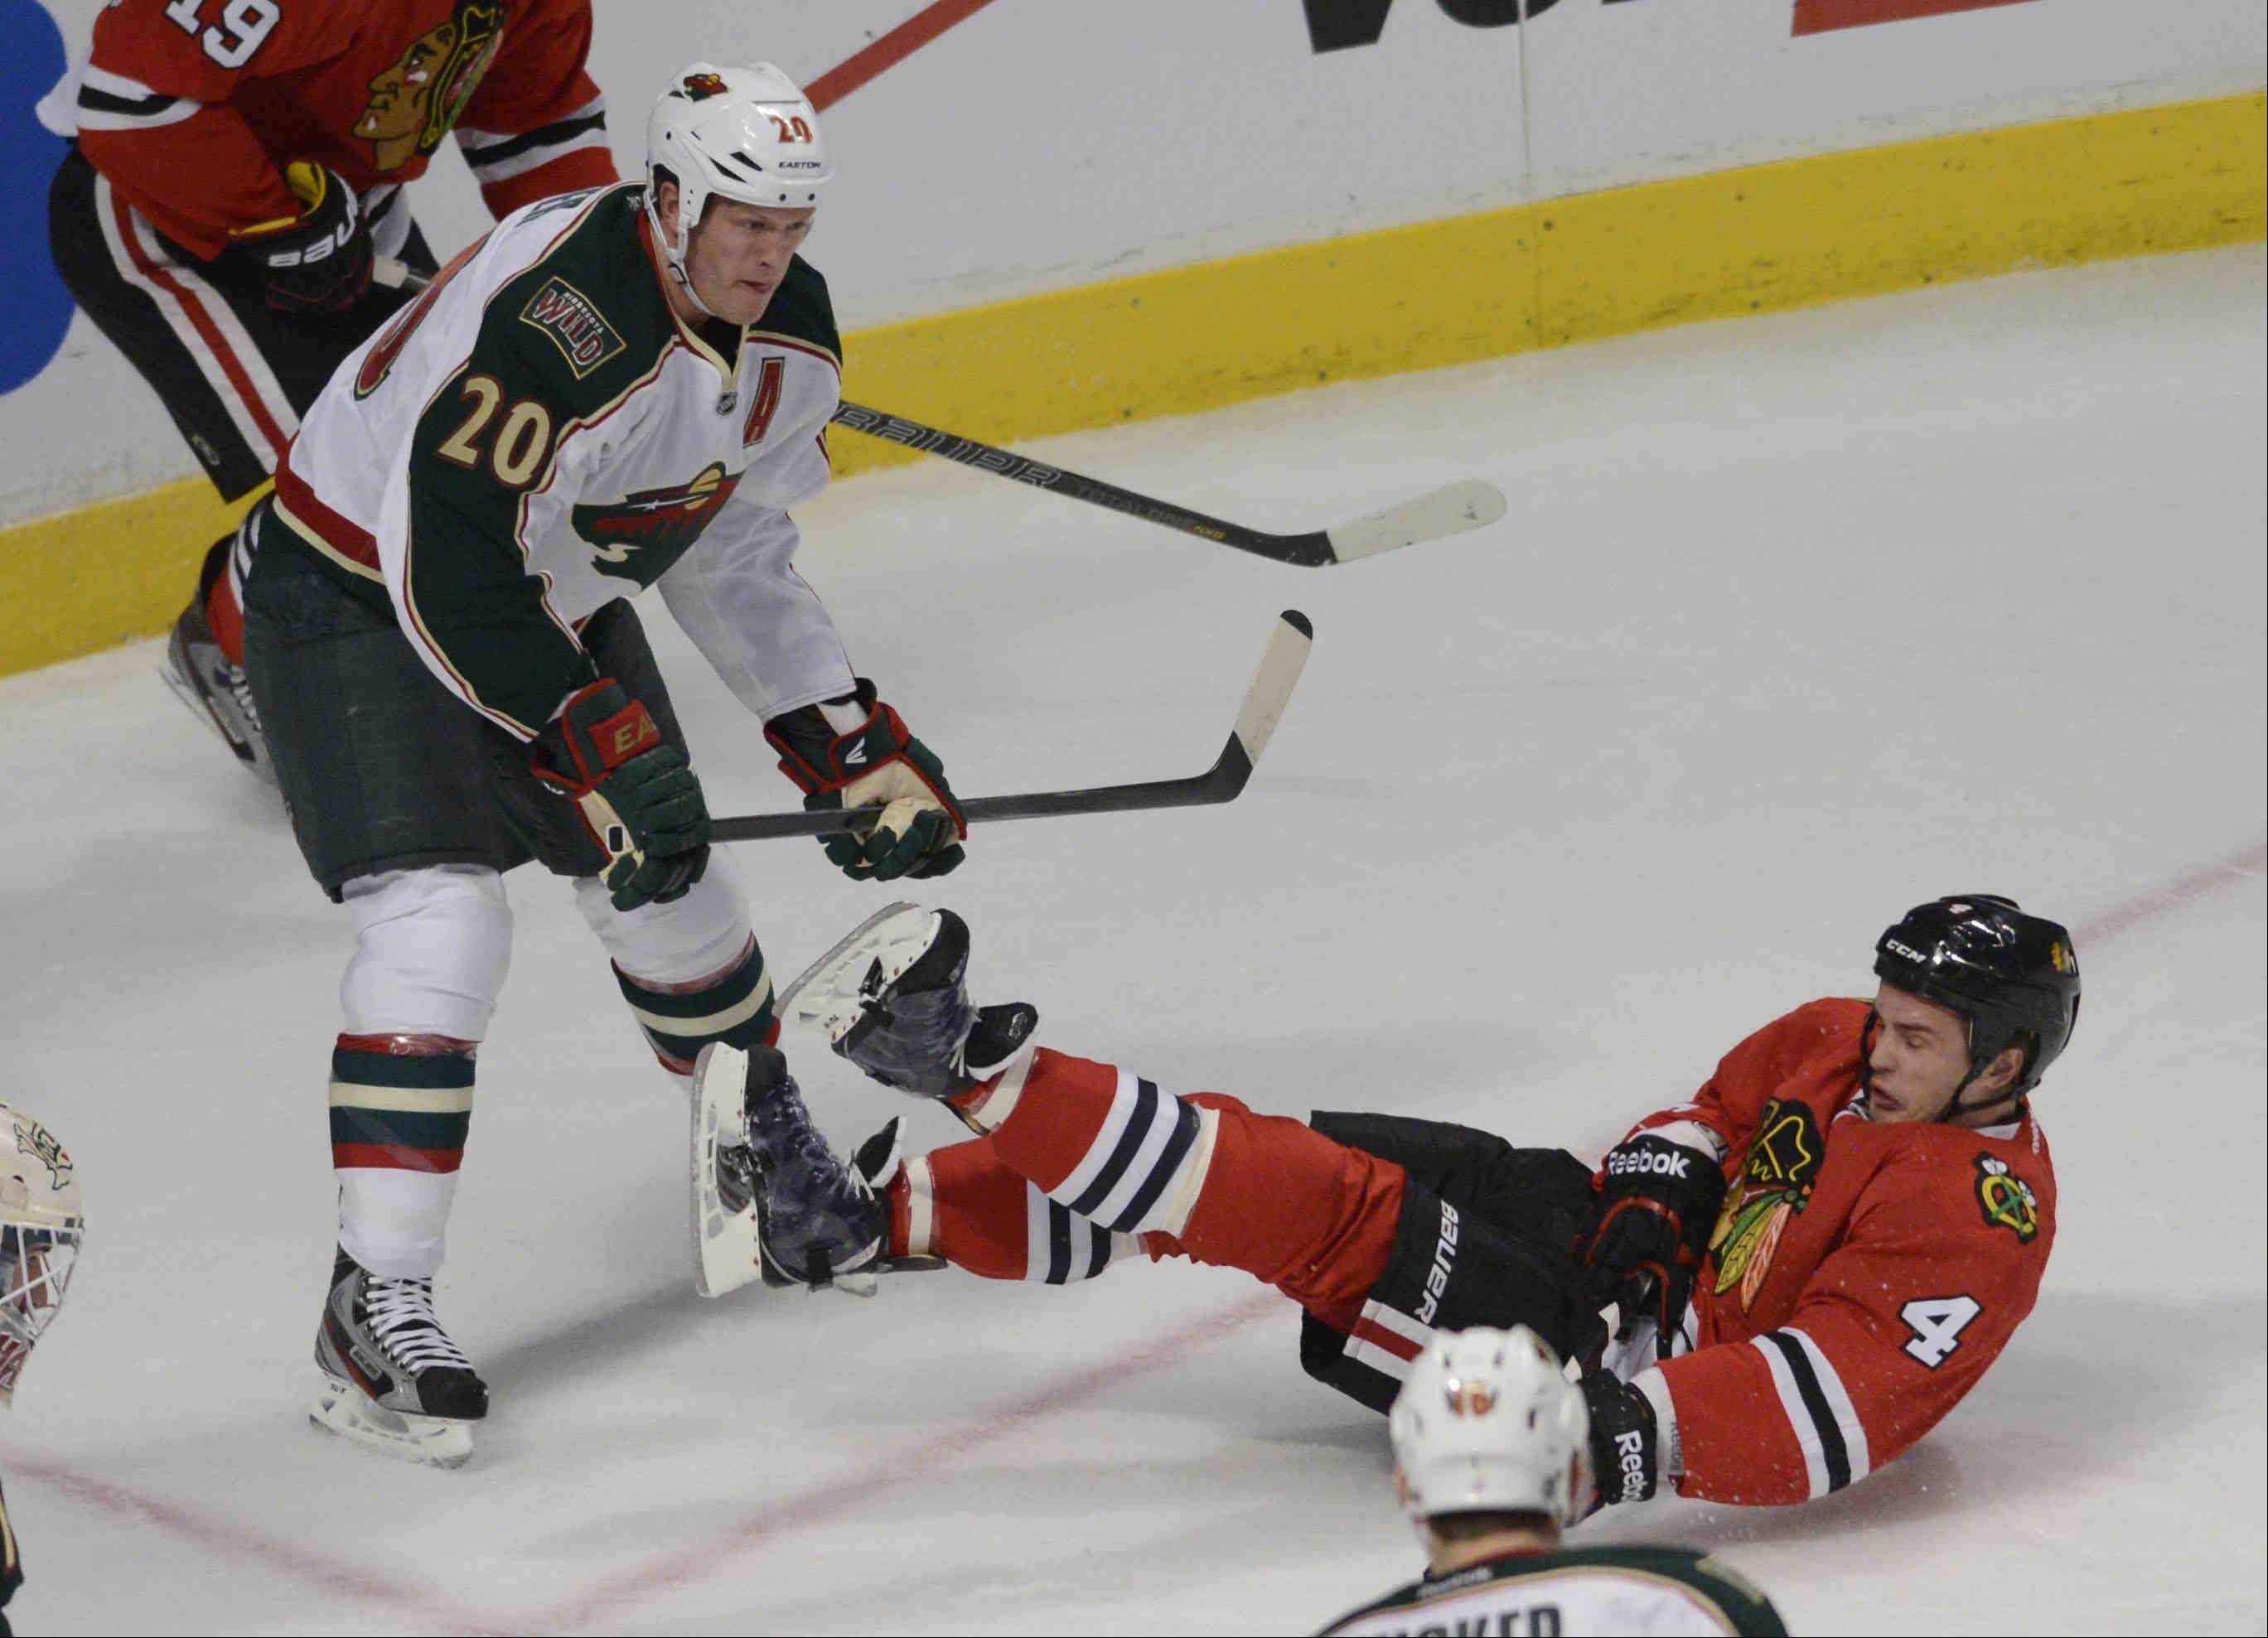 Chicago Blackhawks defenseman Niklas Hjalmarsson gets knocked off his skates.